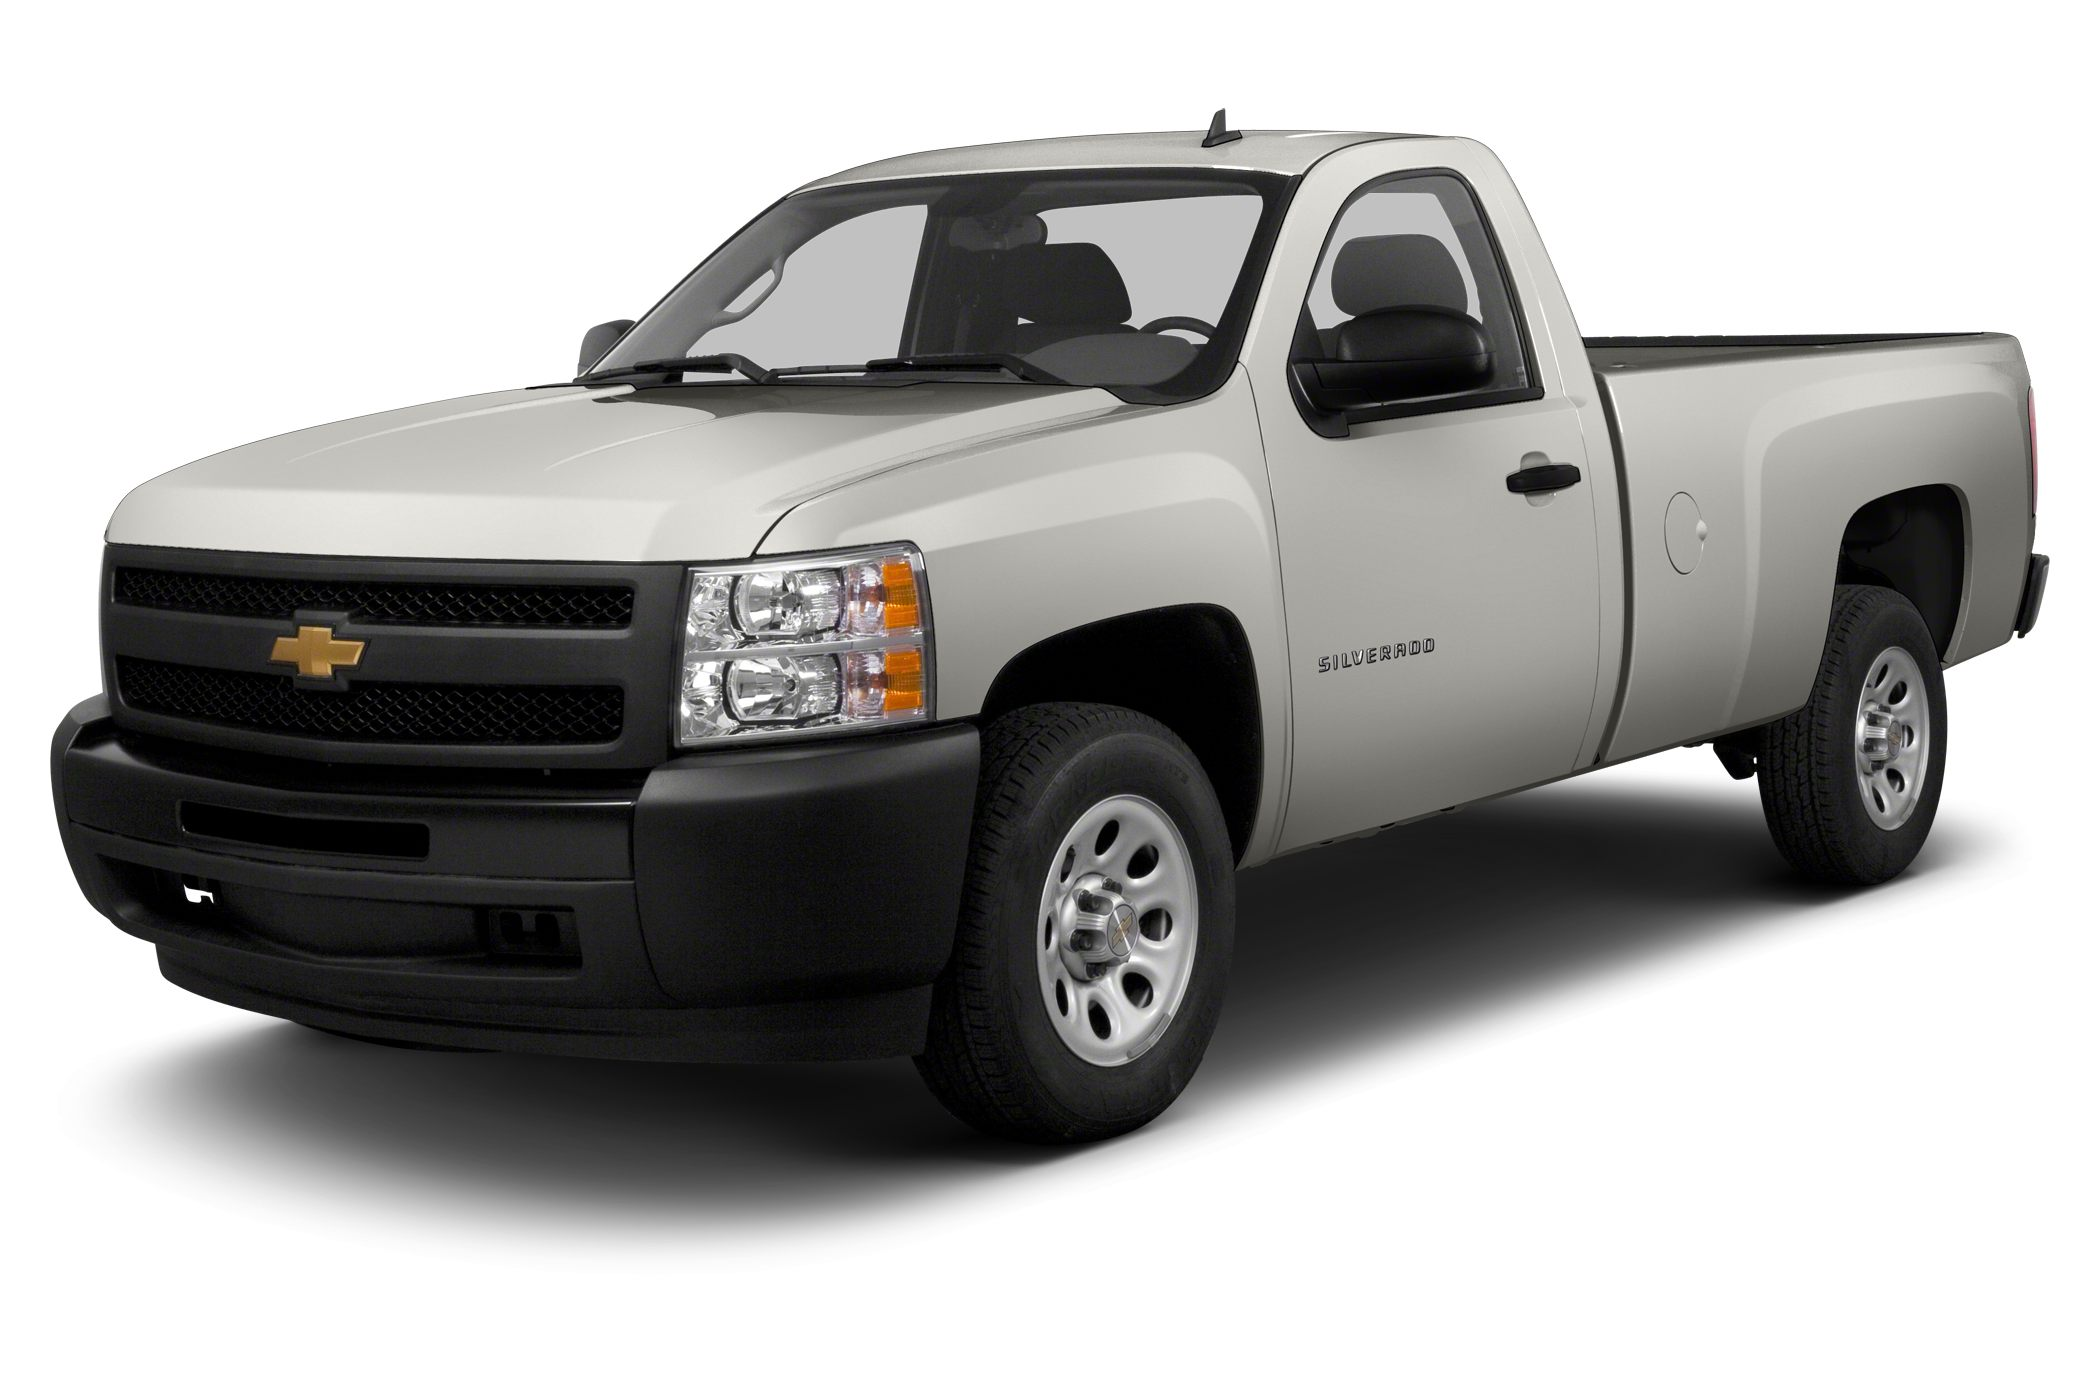 2013 Chevrolet Silverado 1500 LT Crew Cab Pickup for sale in Clinton for $35,817 with 15,644 miles.